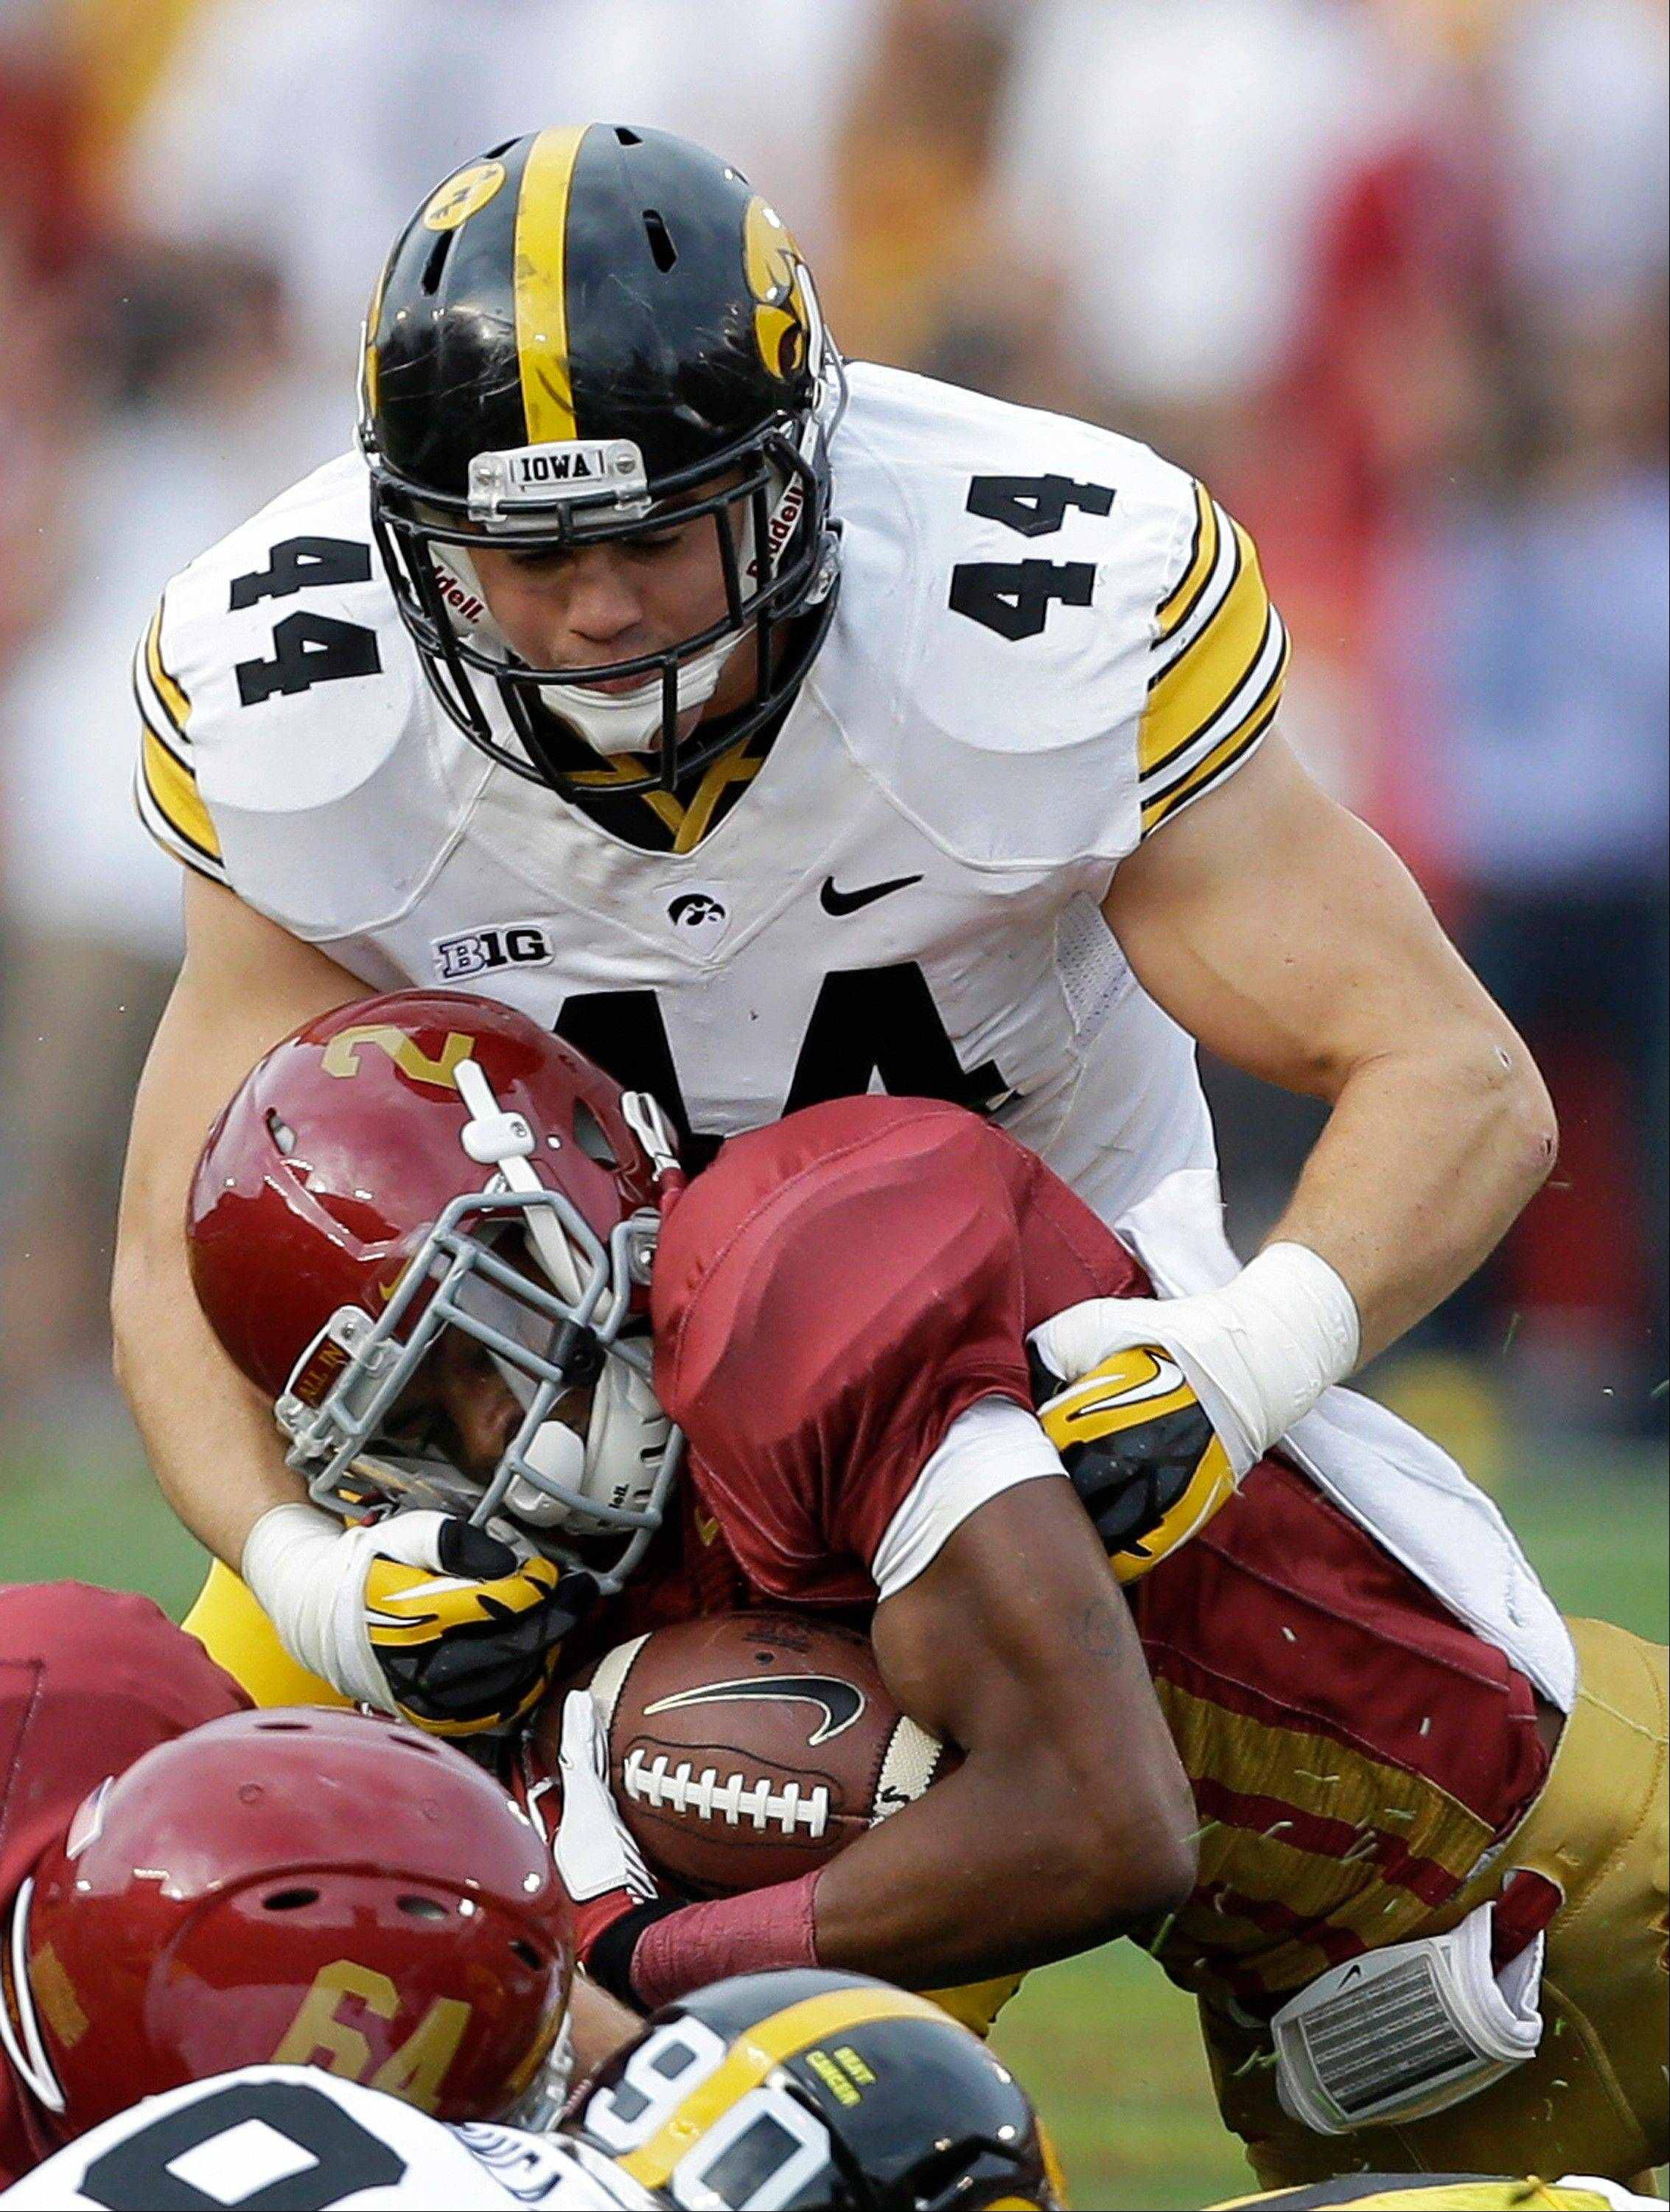 Hawkeyes improving on 'D' in '13